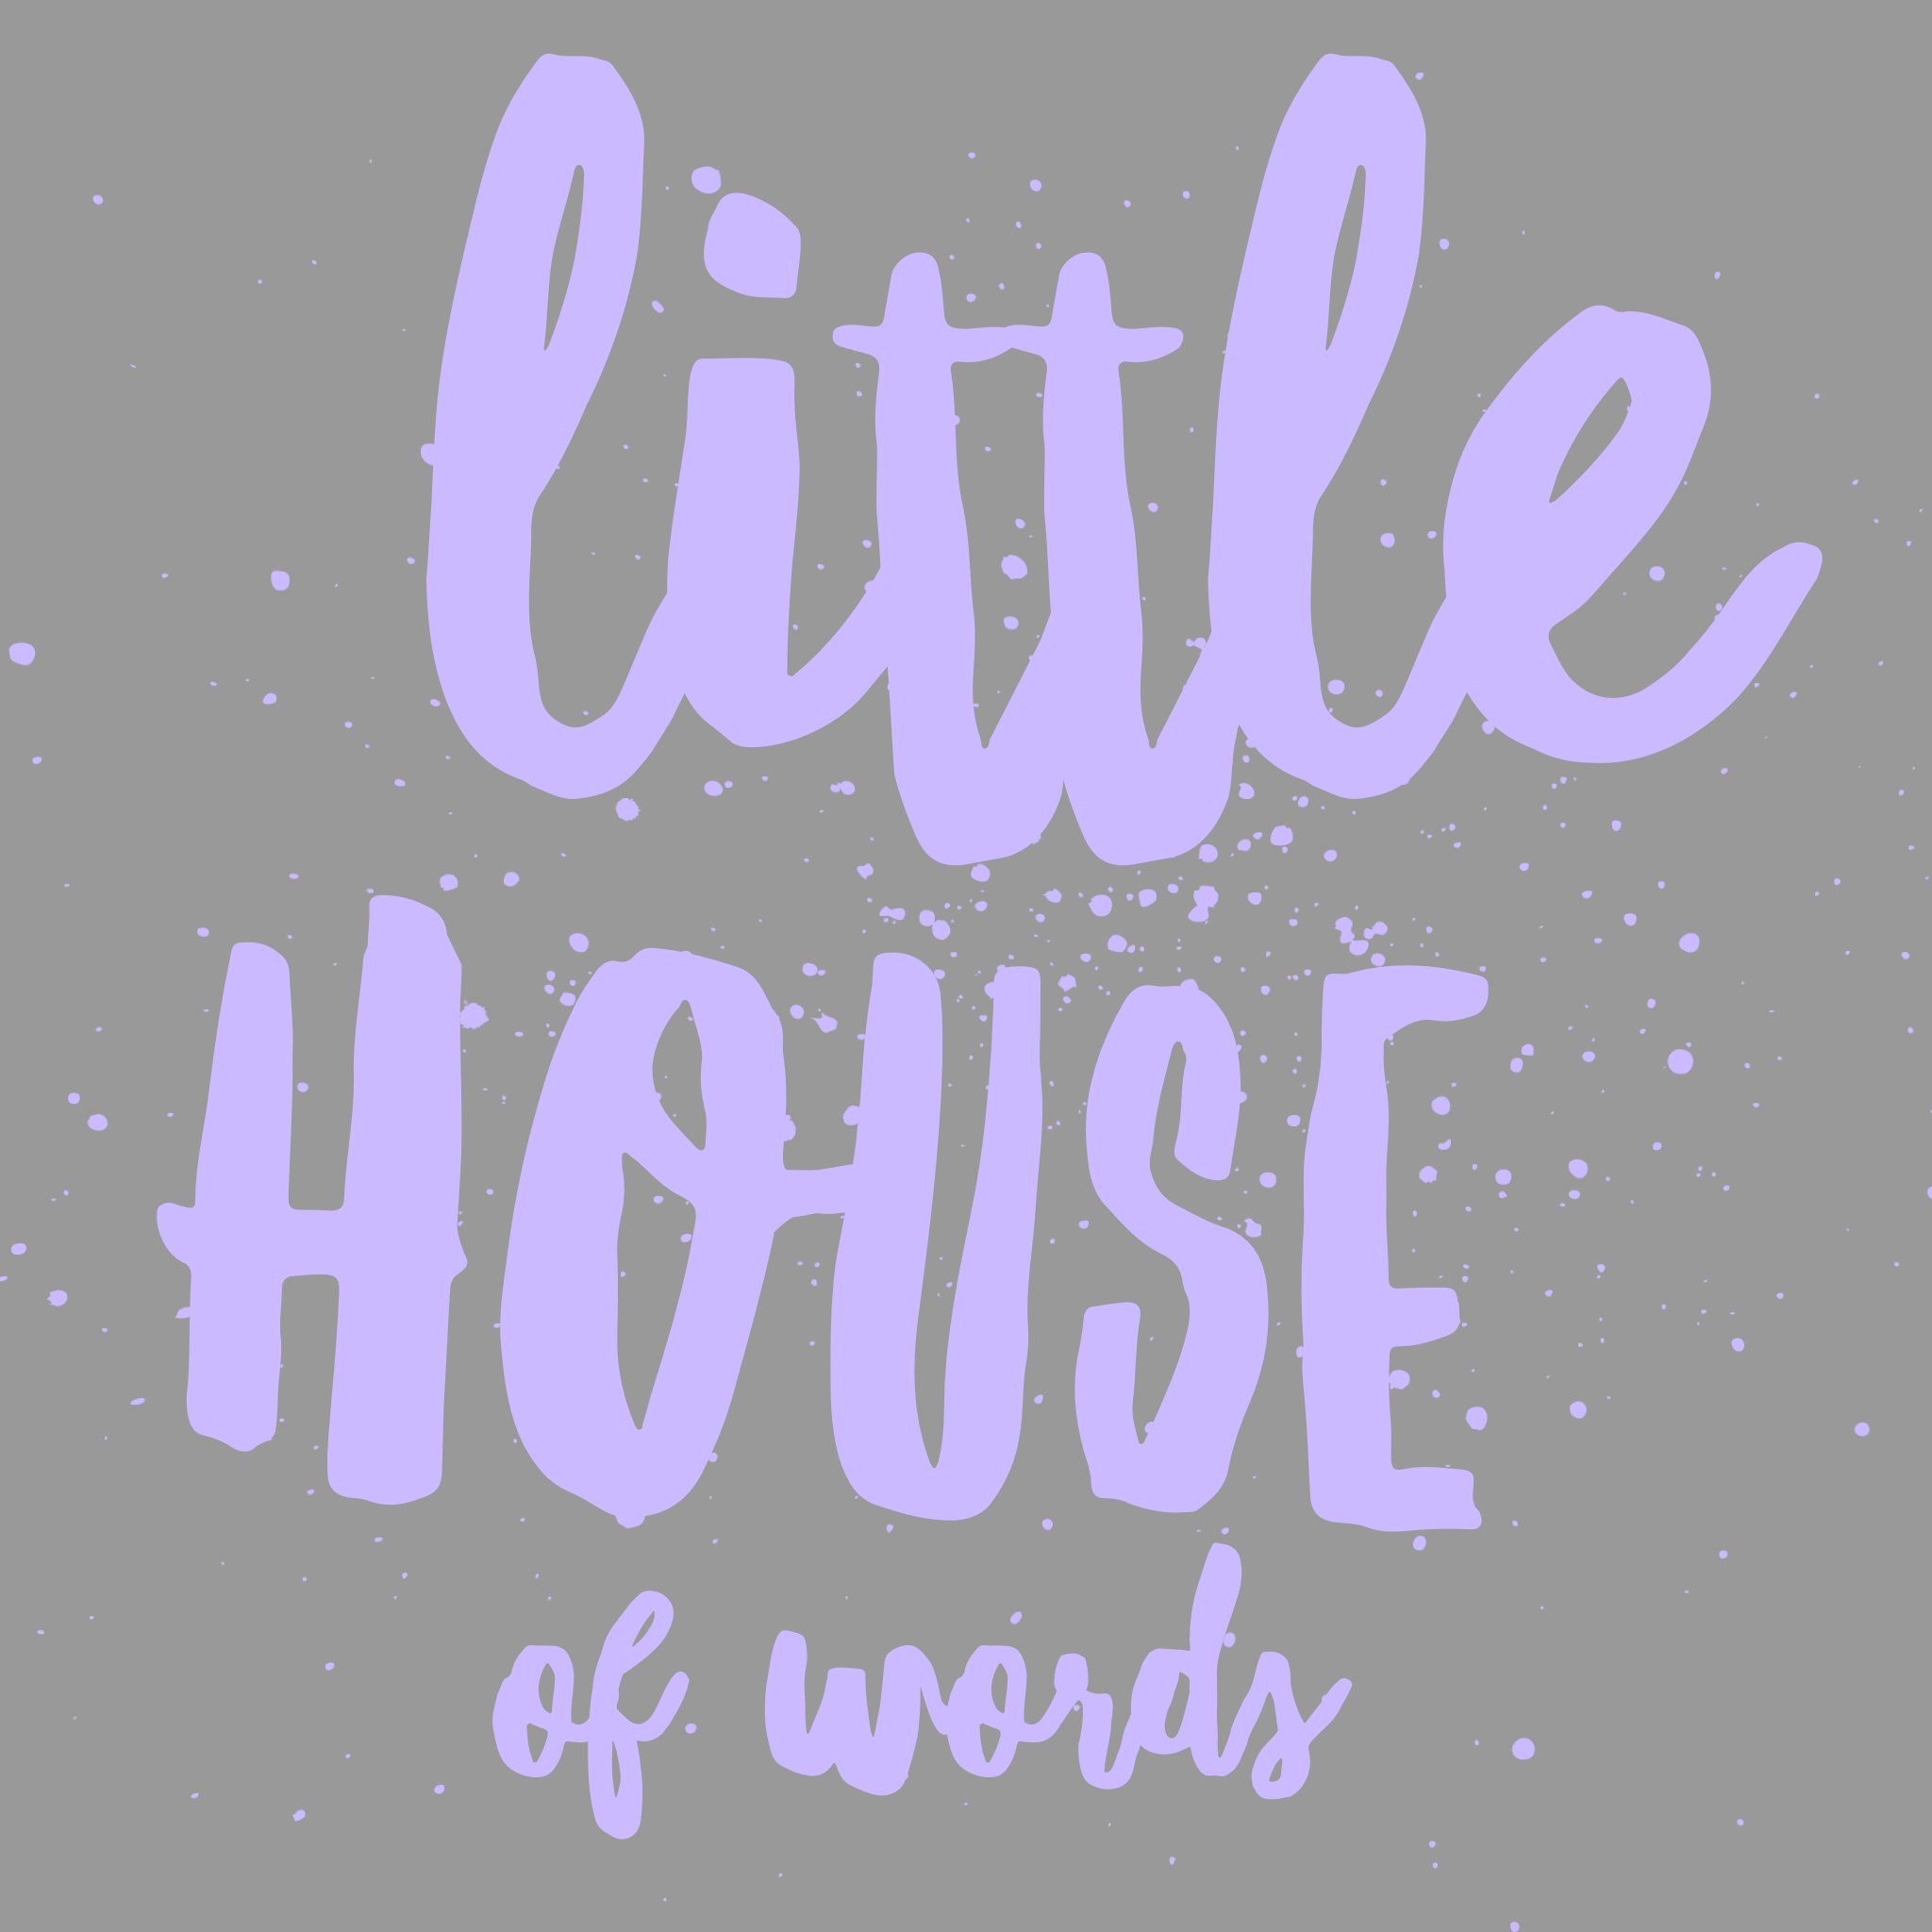 Little House of Words